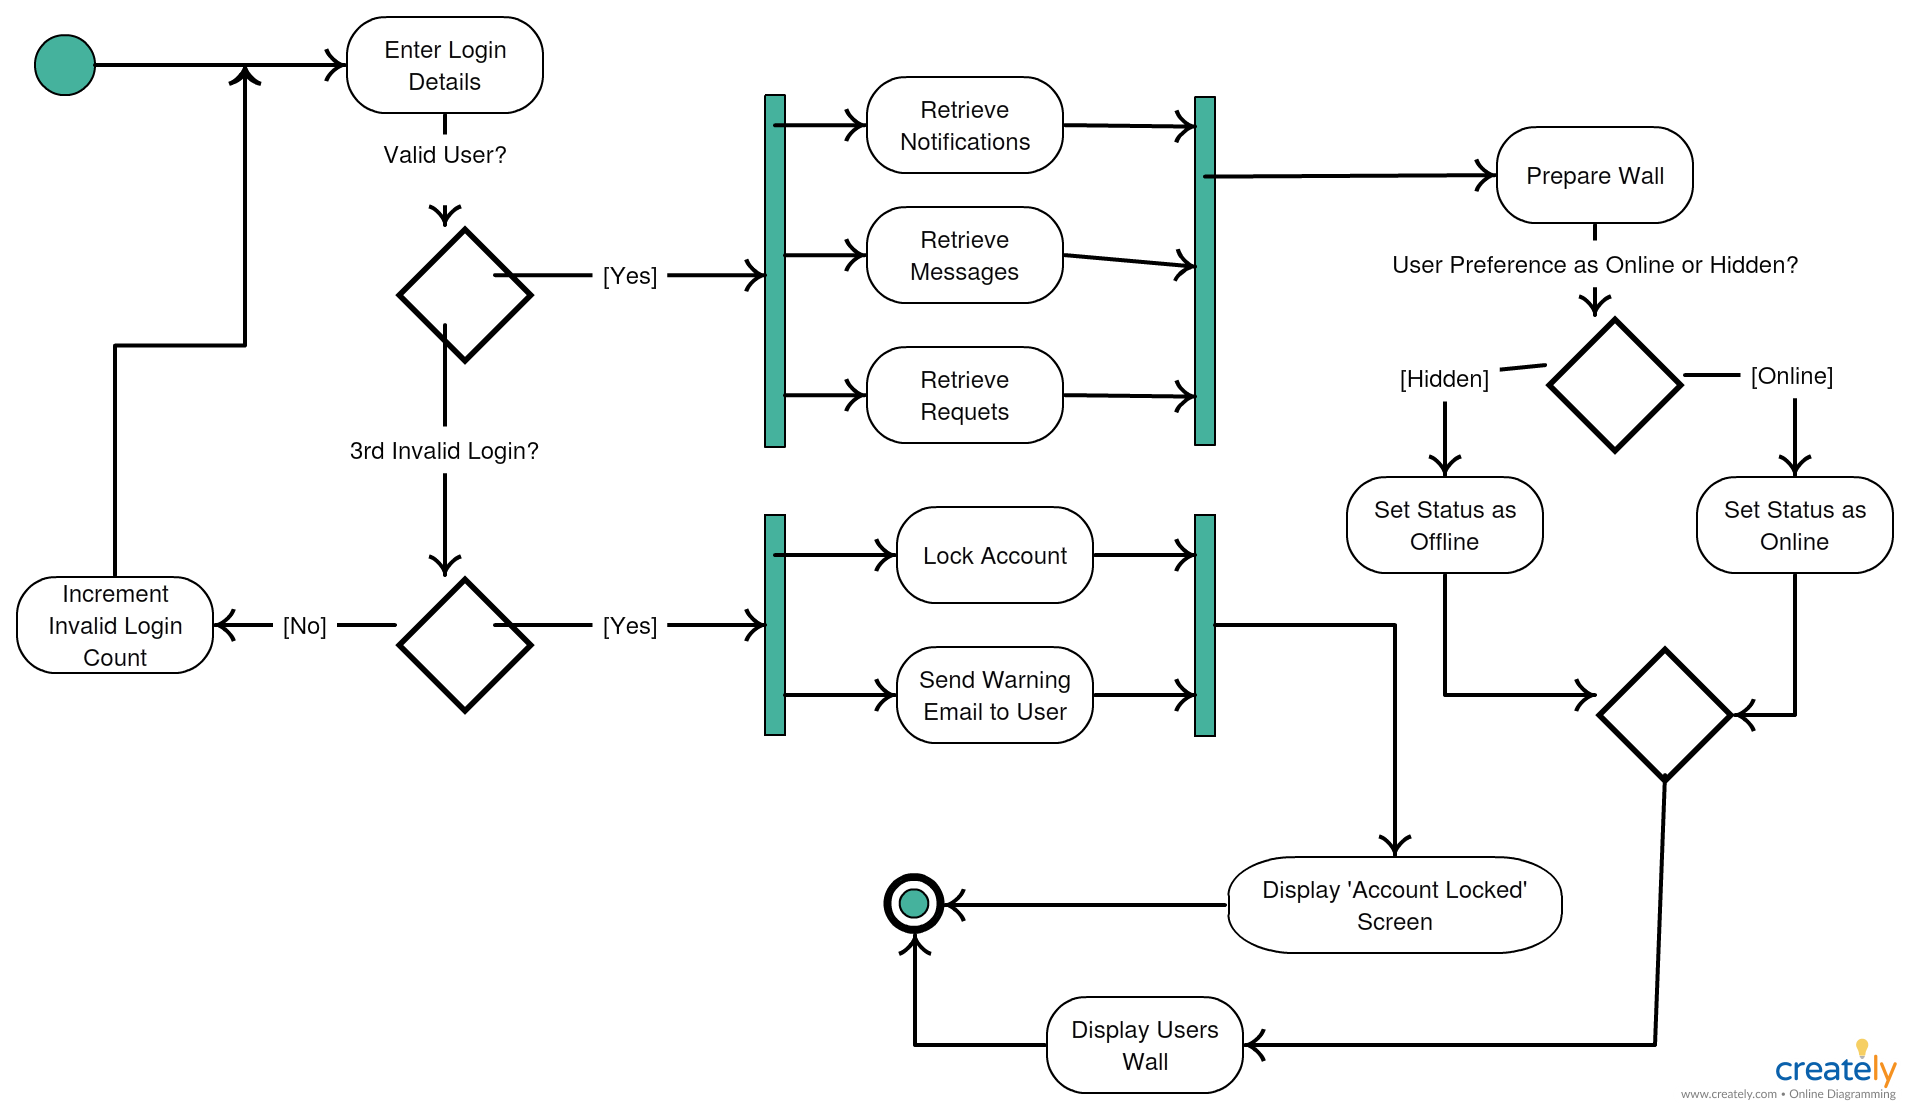 medium resolution of an activity diagram visually presents a series of actions or flow of control in a system